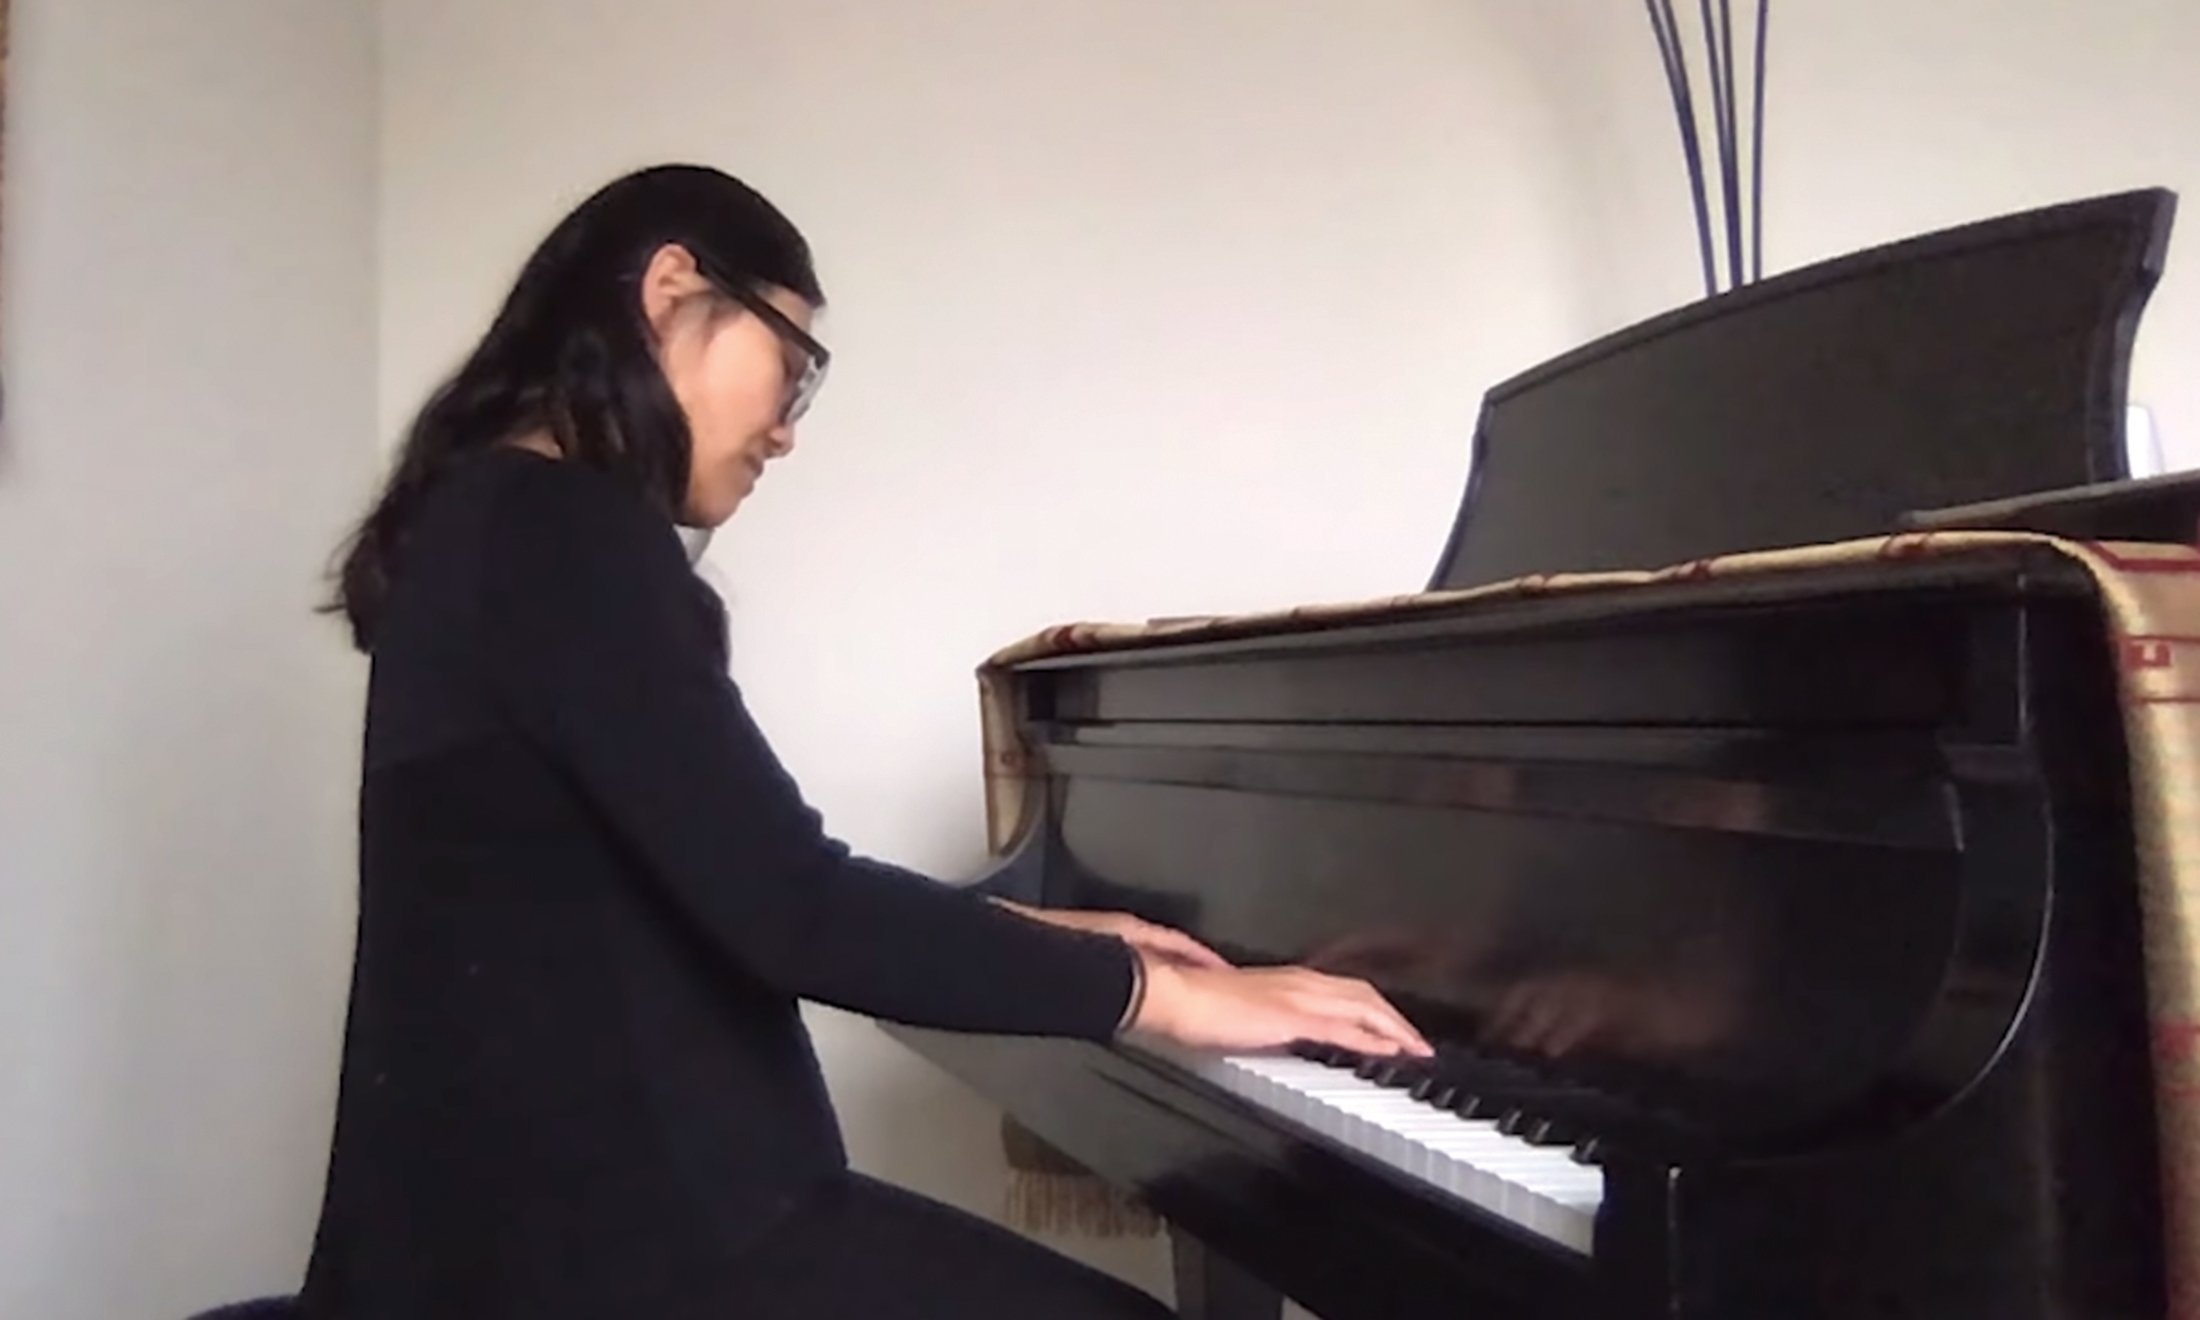 A woman playing the piano.